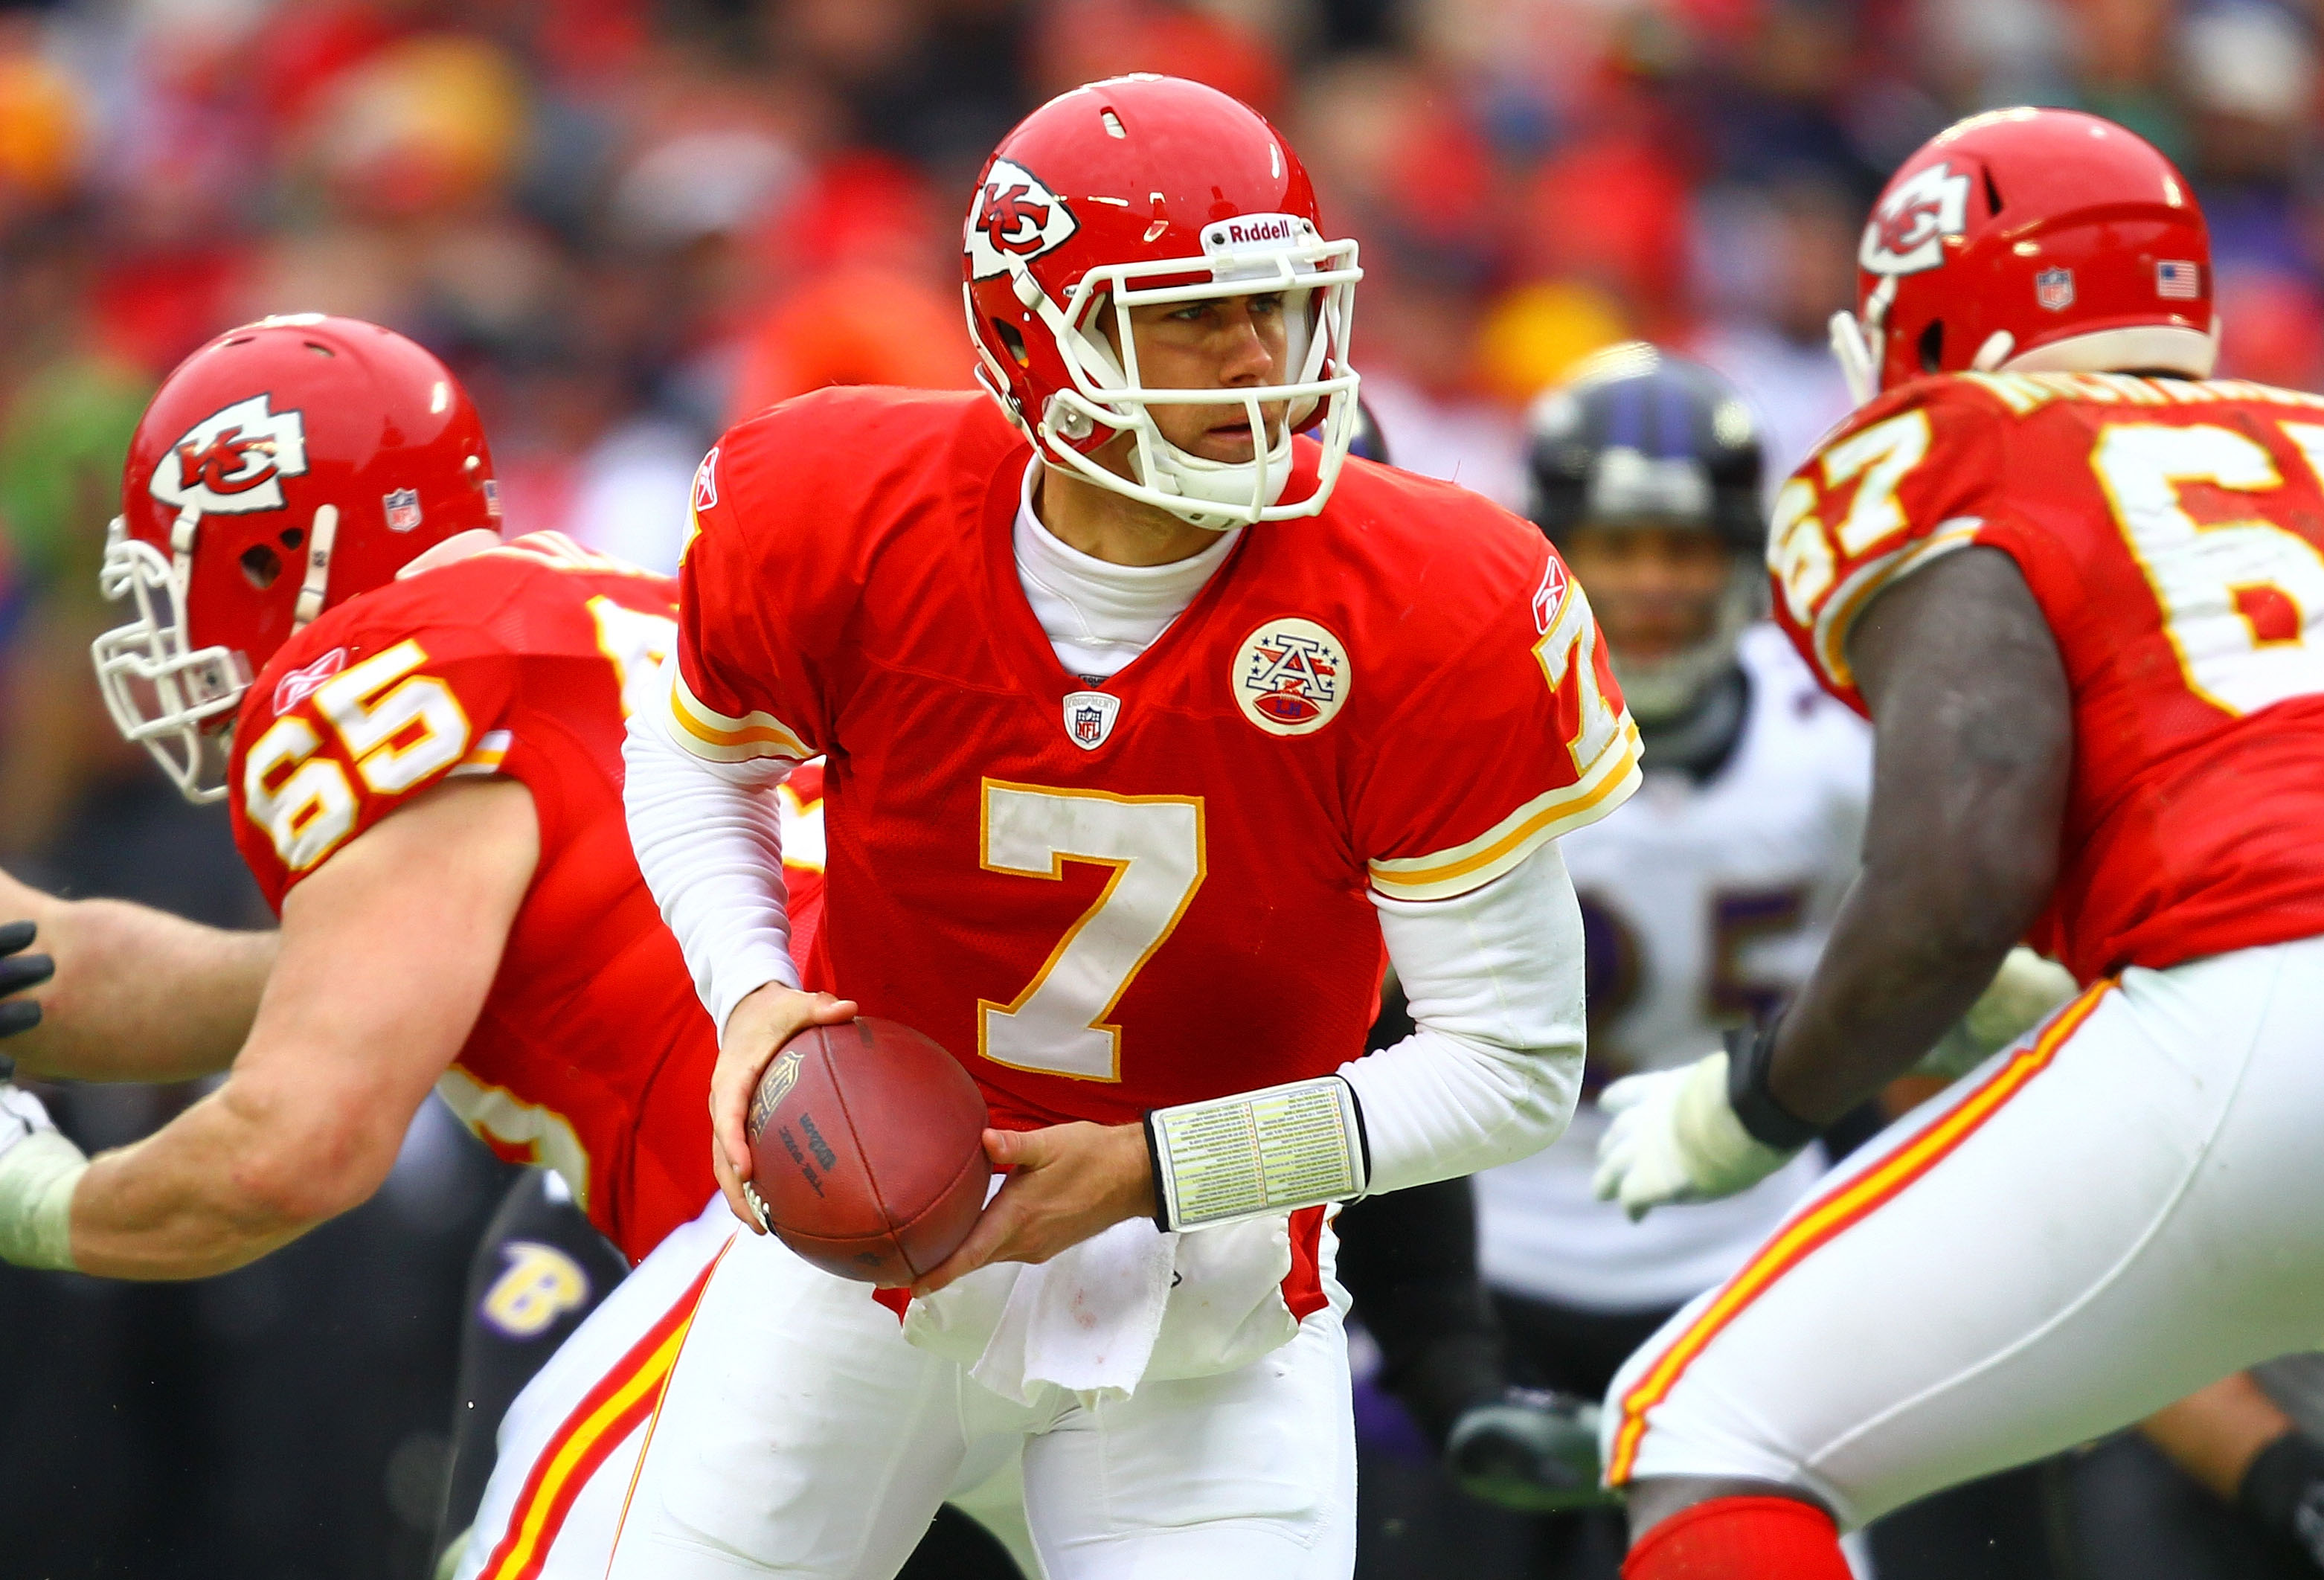 KANSAS CITY, MO - JANUARY 09:  Quarterback Matt Cassel #7 of the Kansas City Chiefs rolls out against the Baltimore Ravens in their 2011 AFC wild card playoff game at Arrowhead Stadium on January 9, 2011 in Kansas City, Missouri.  (Photo by Dilip Vishwana